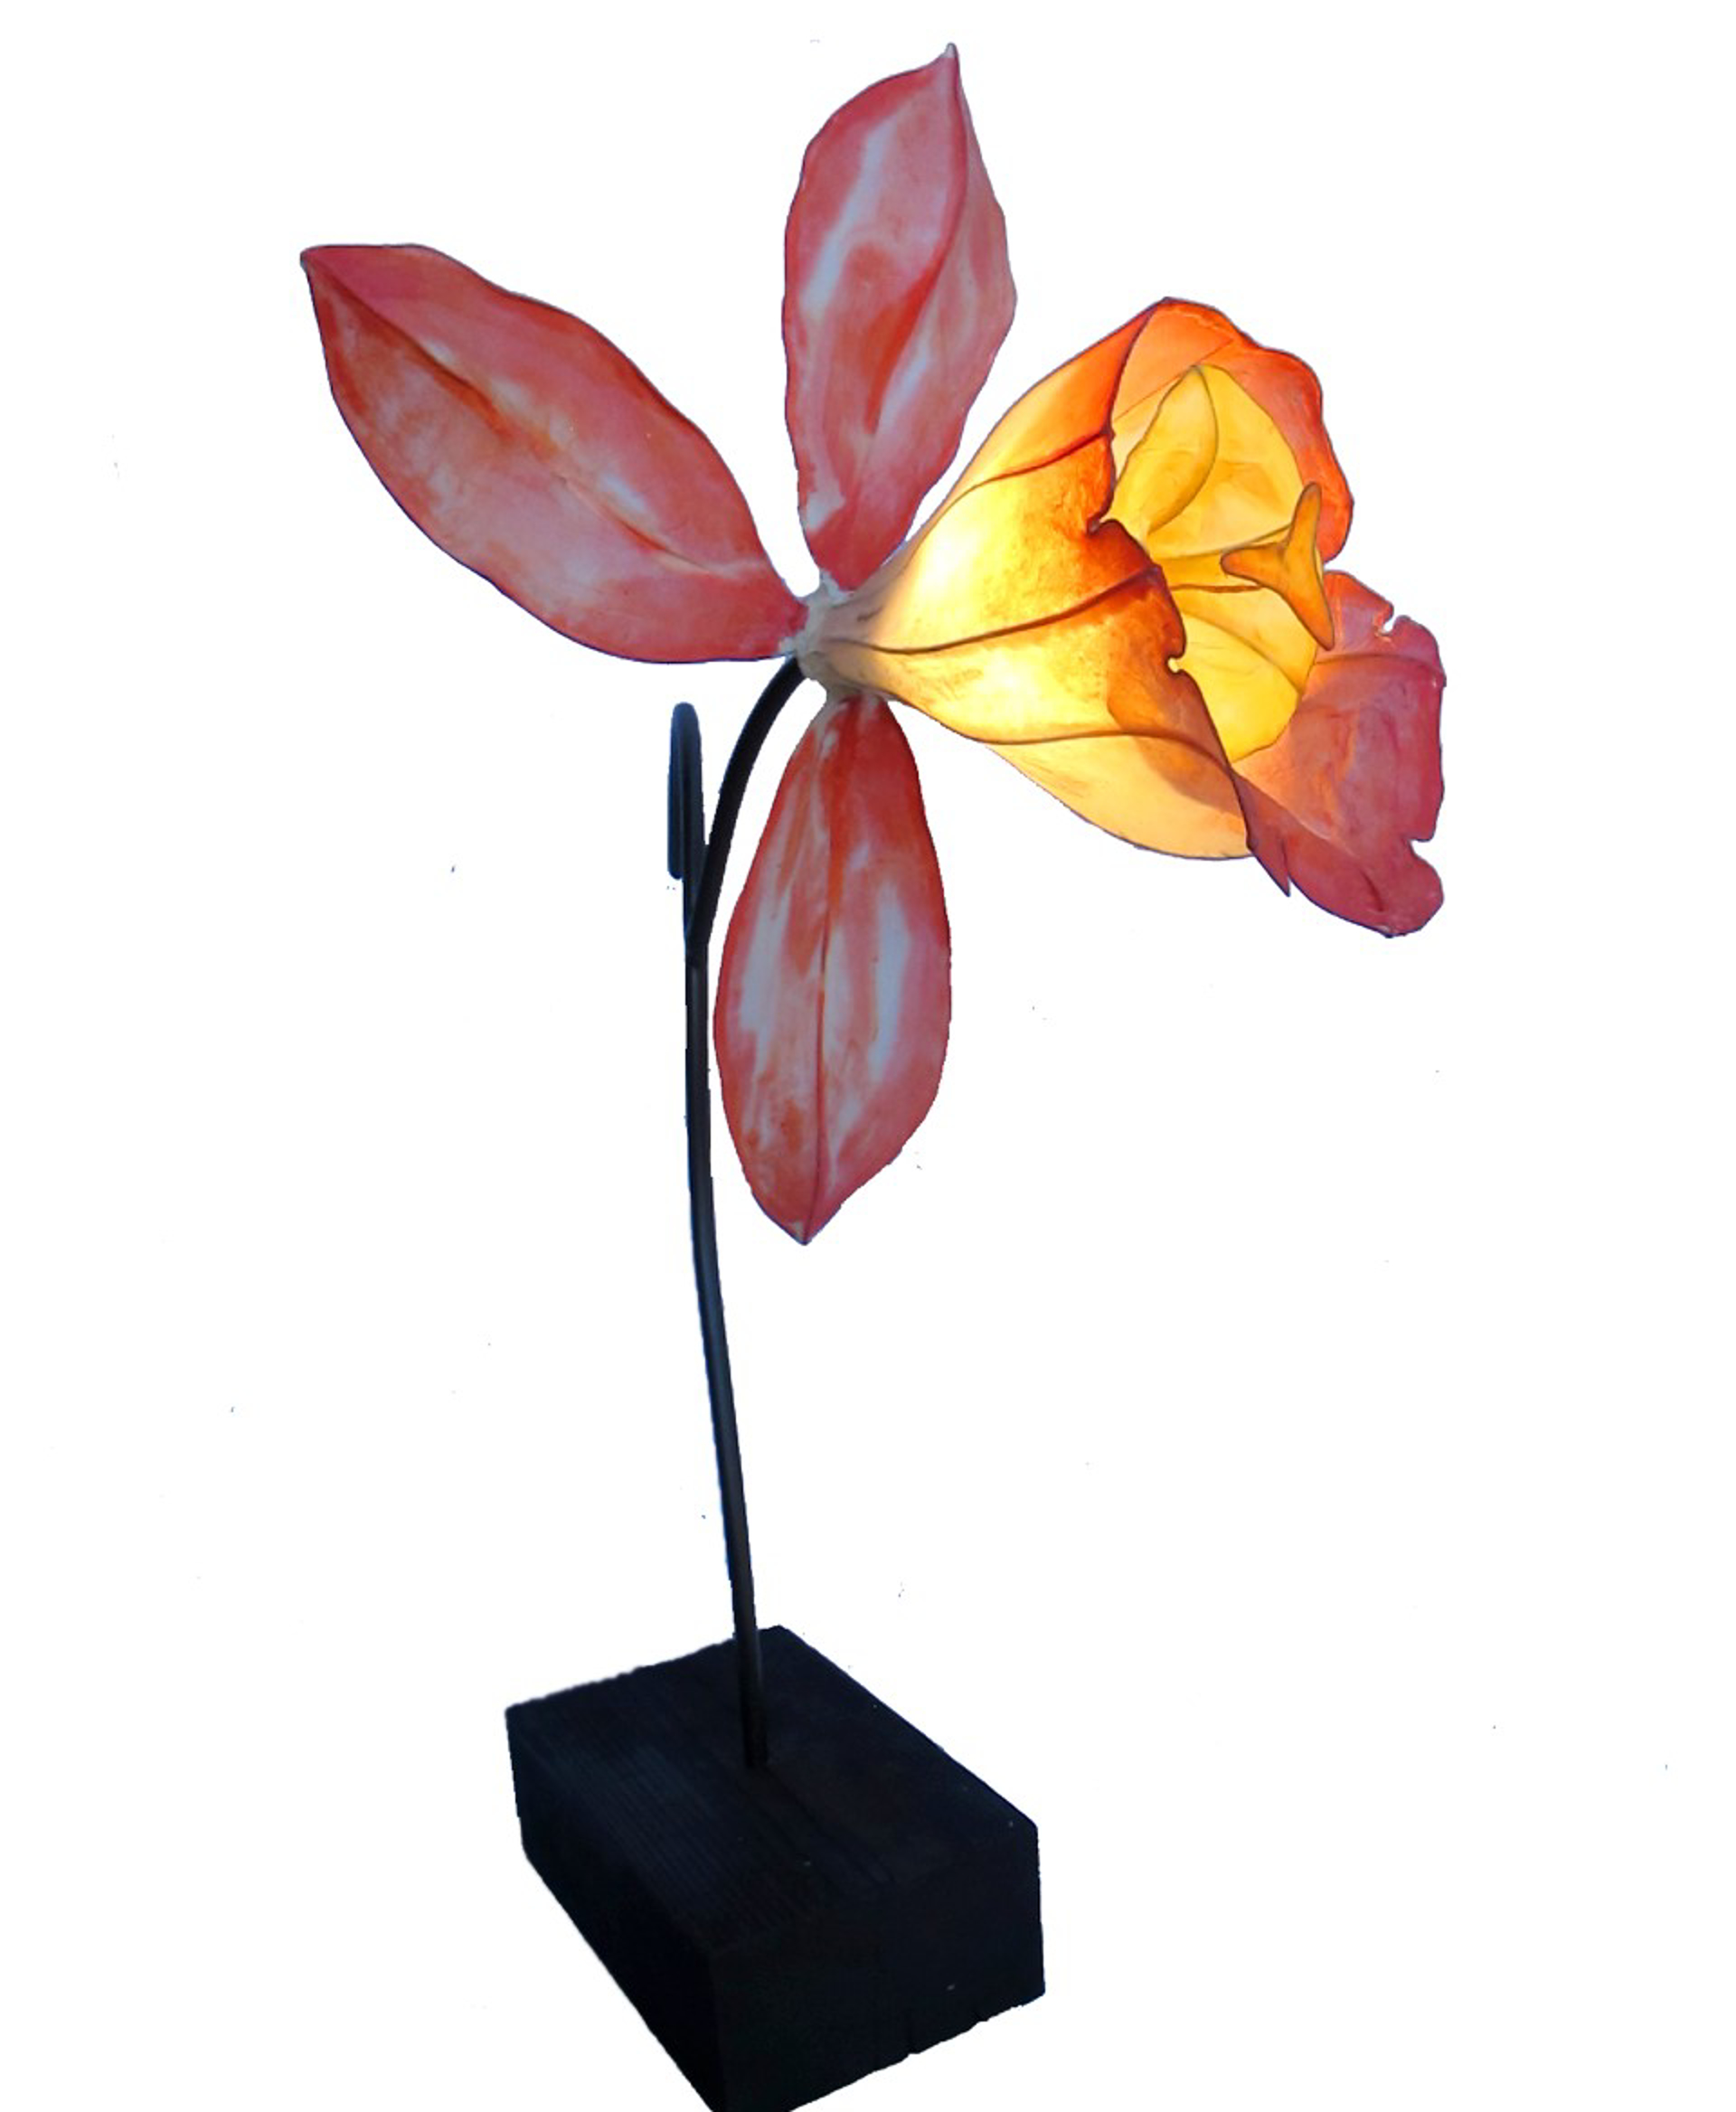 Self Pollinating | Crimson Orchid by HiiH Lights